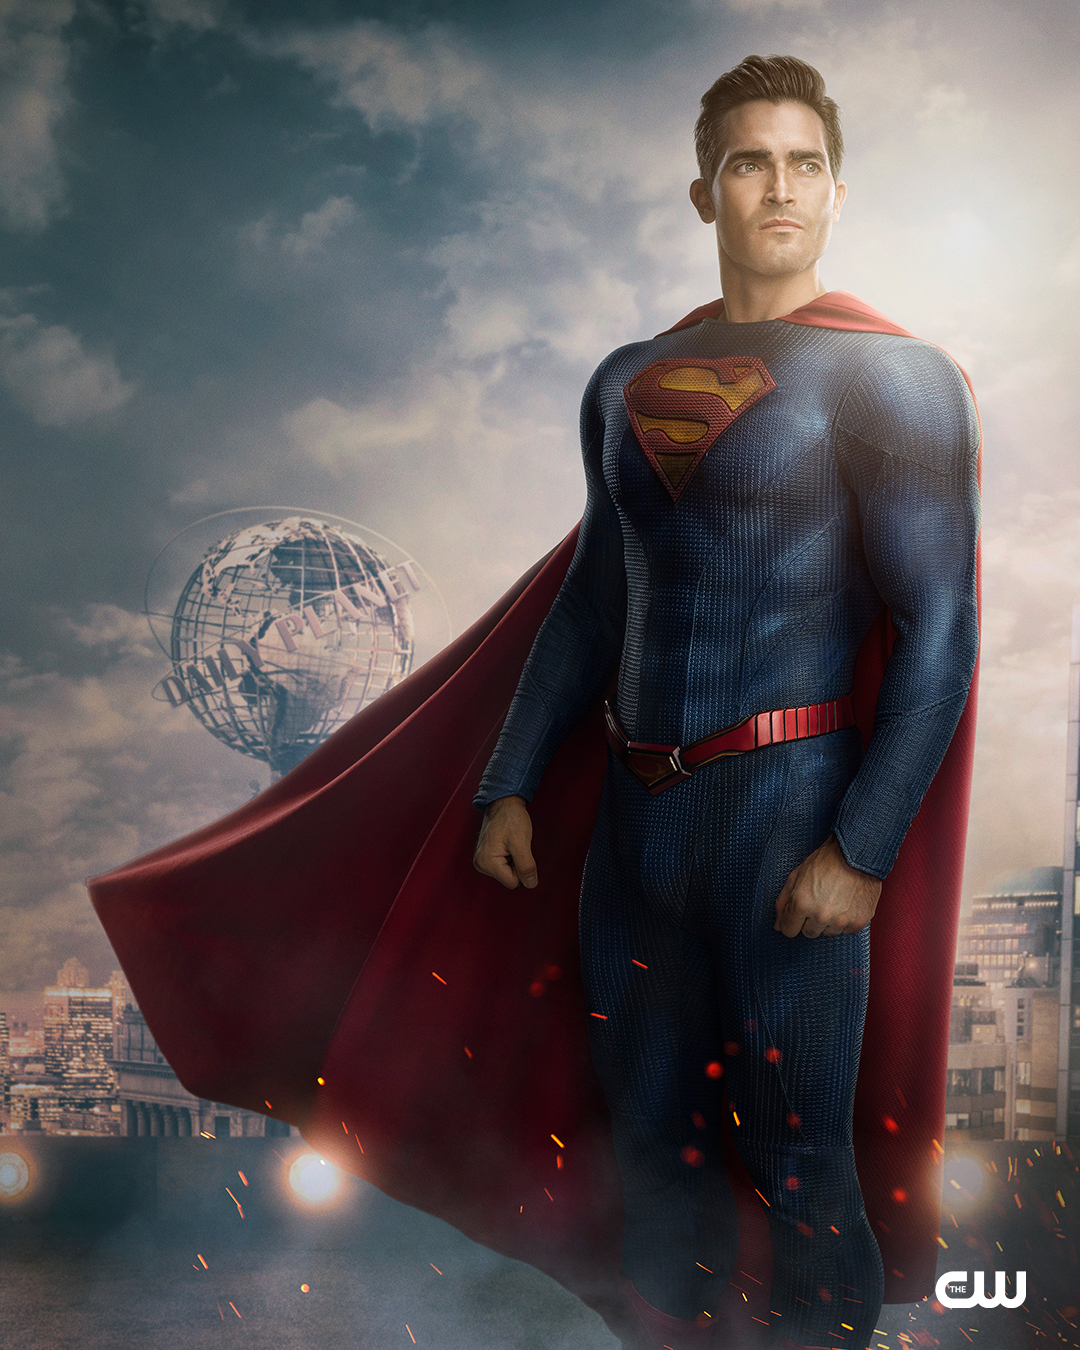 Superman And Lois CW Promotional Poster